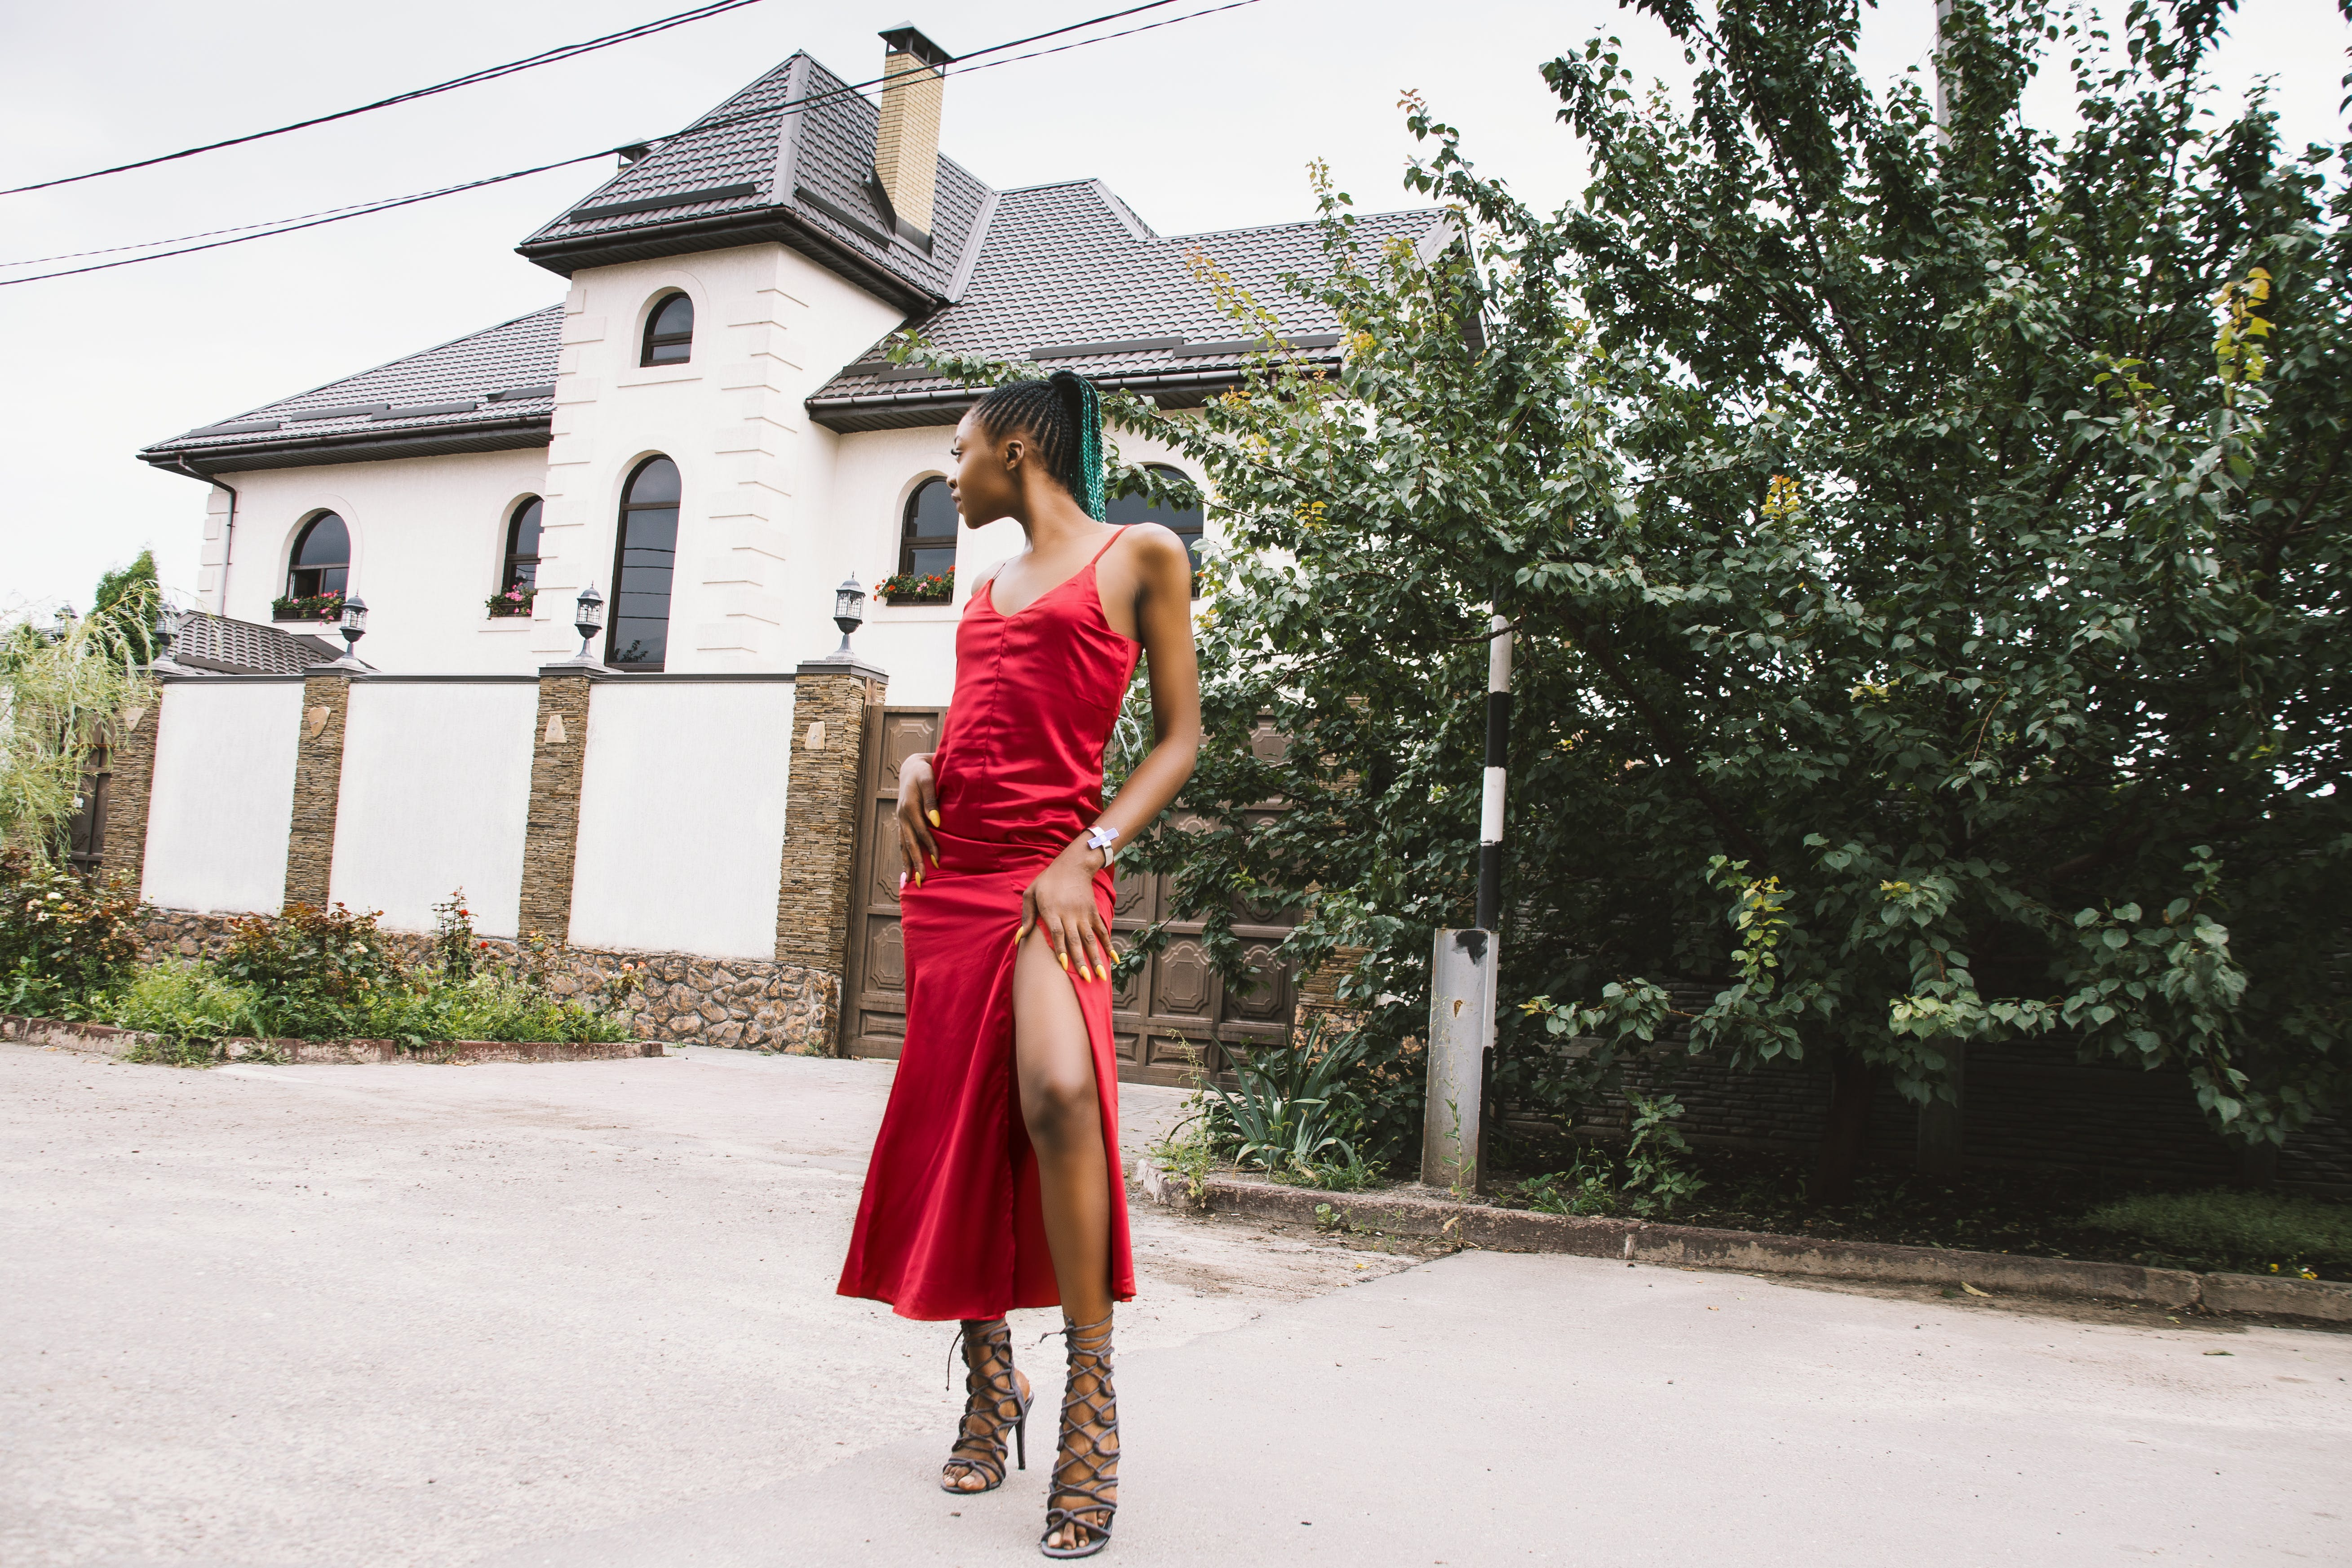 Woman Wearing Red Spaghetti Strap Split Dress in Front of White and Gray House